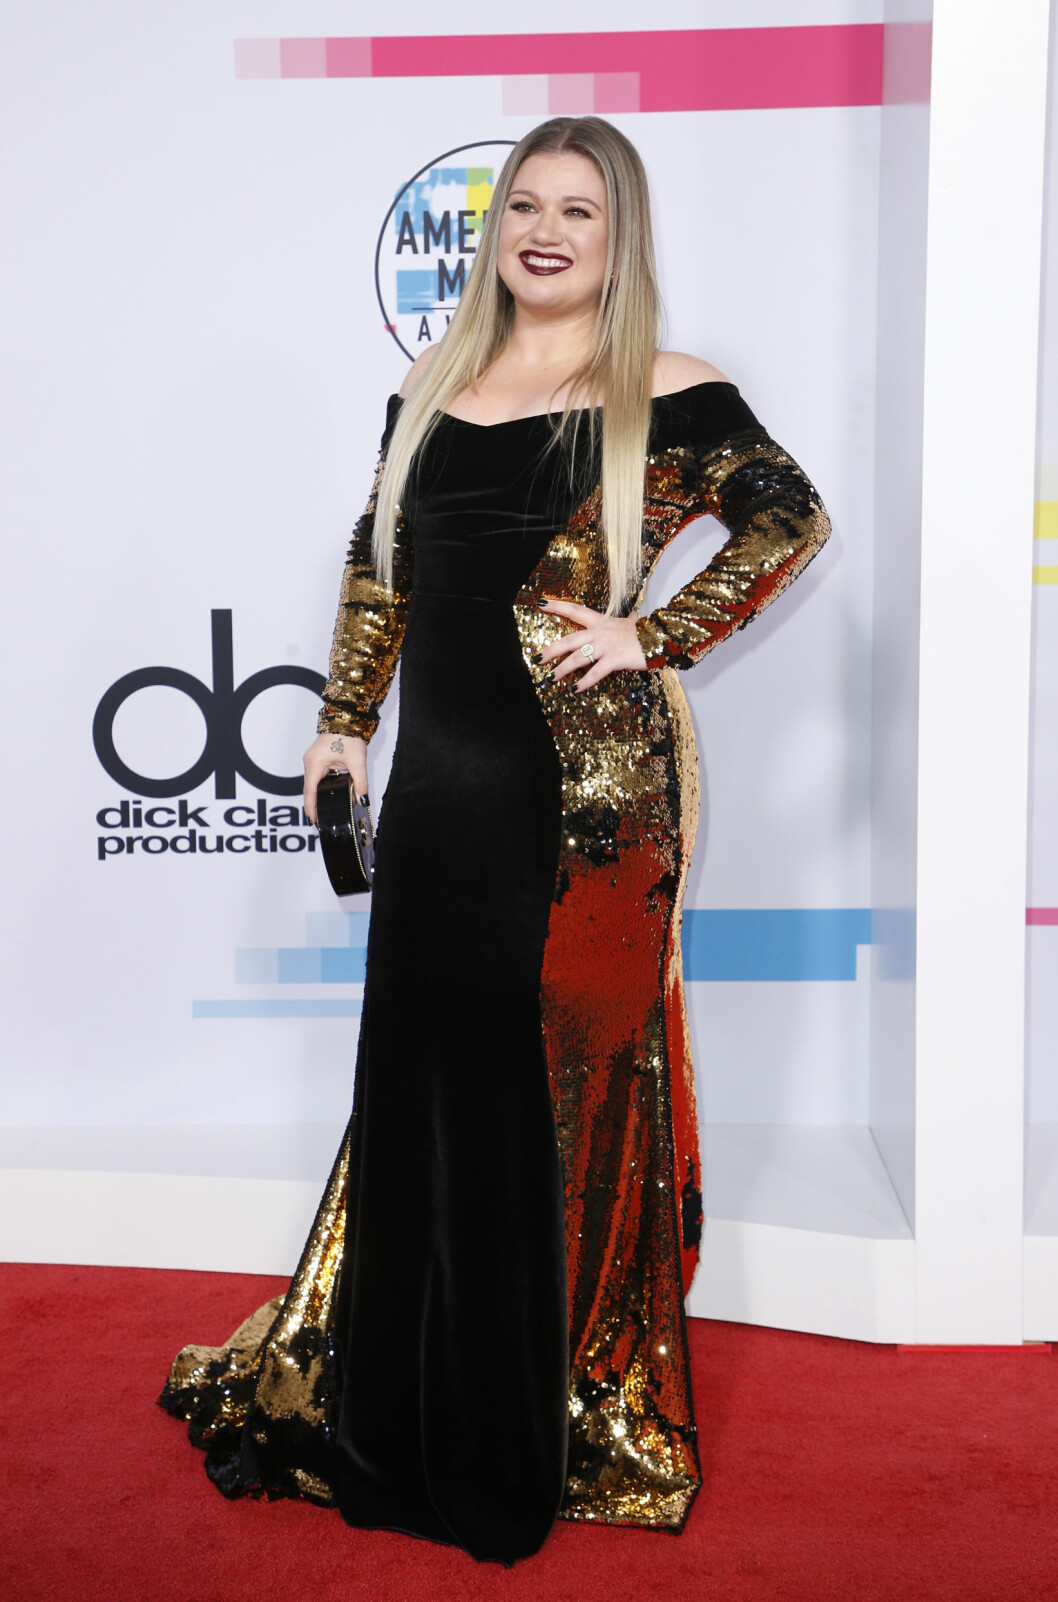 AMERICAN MUSIC AWARDS: Kelly Clarkson